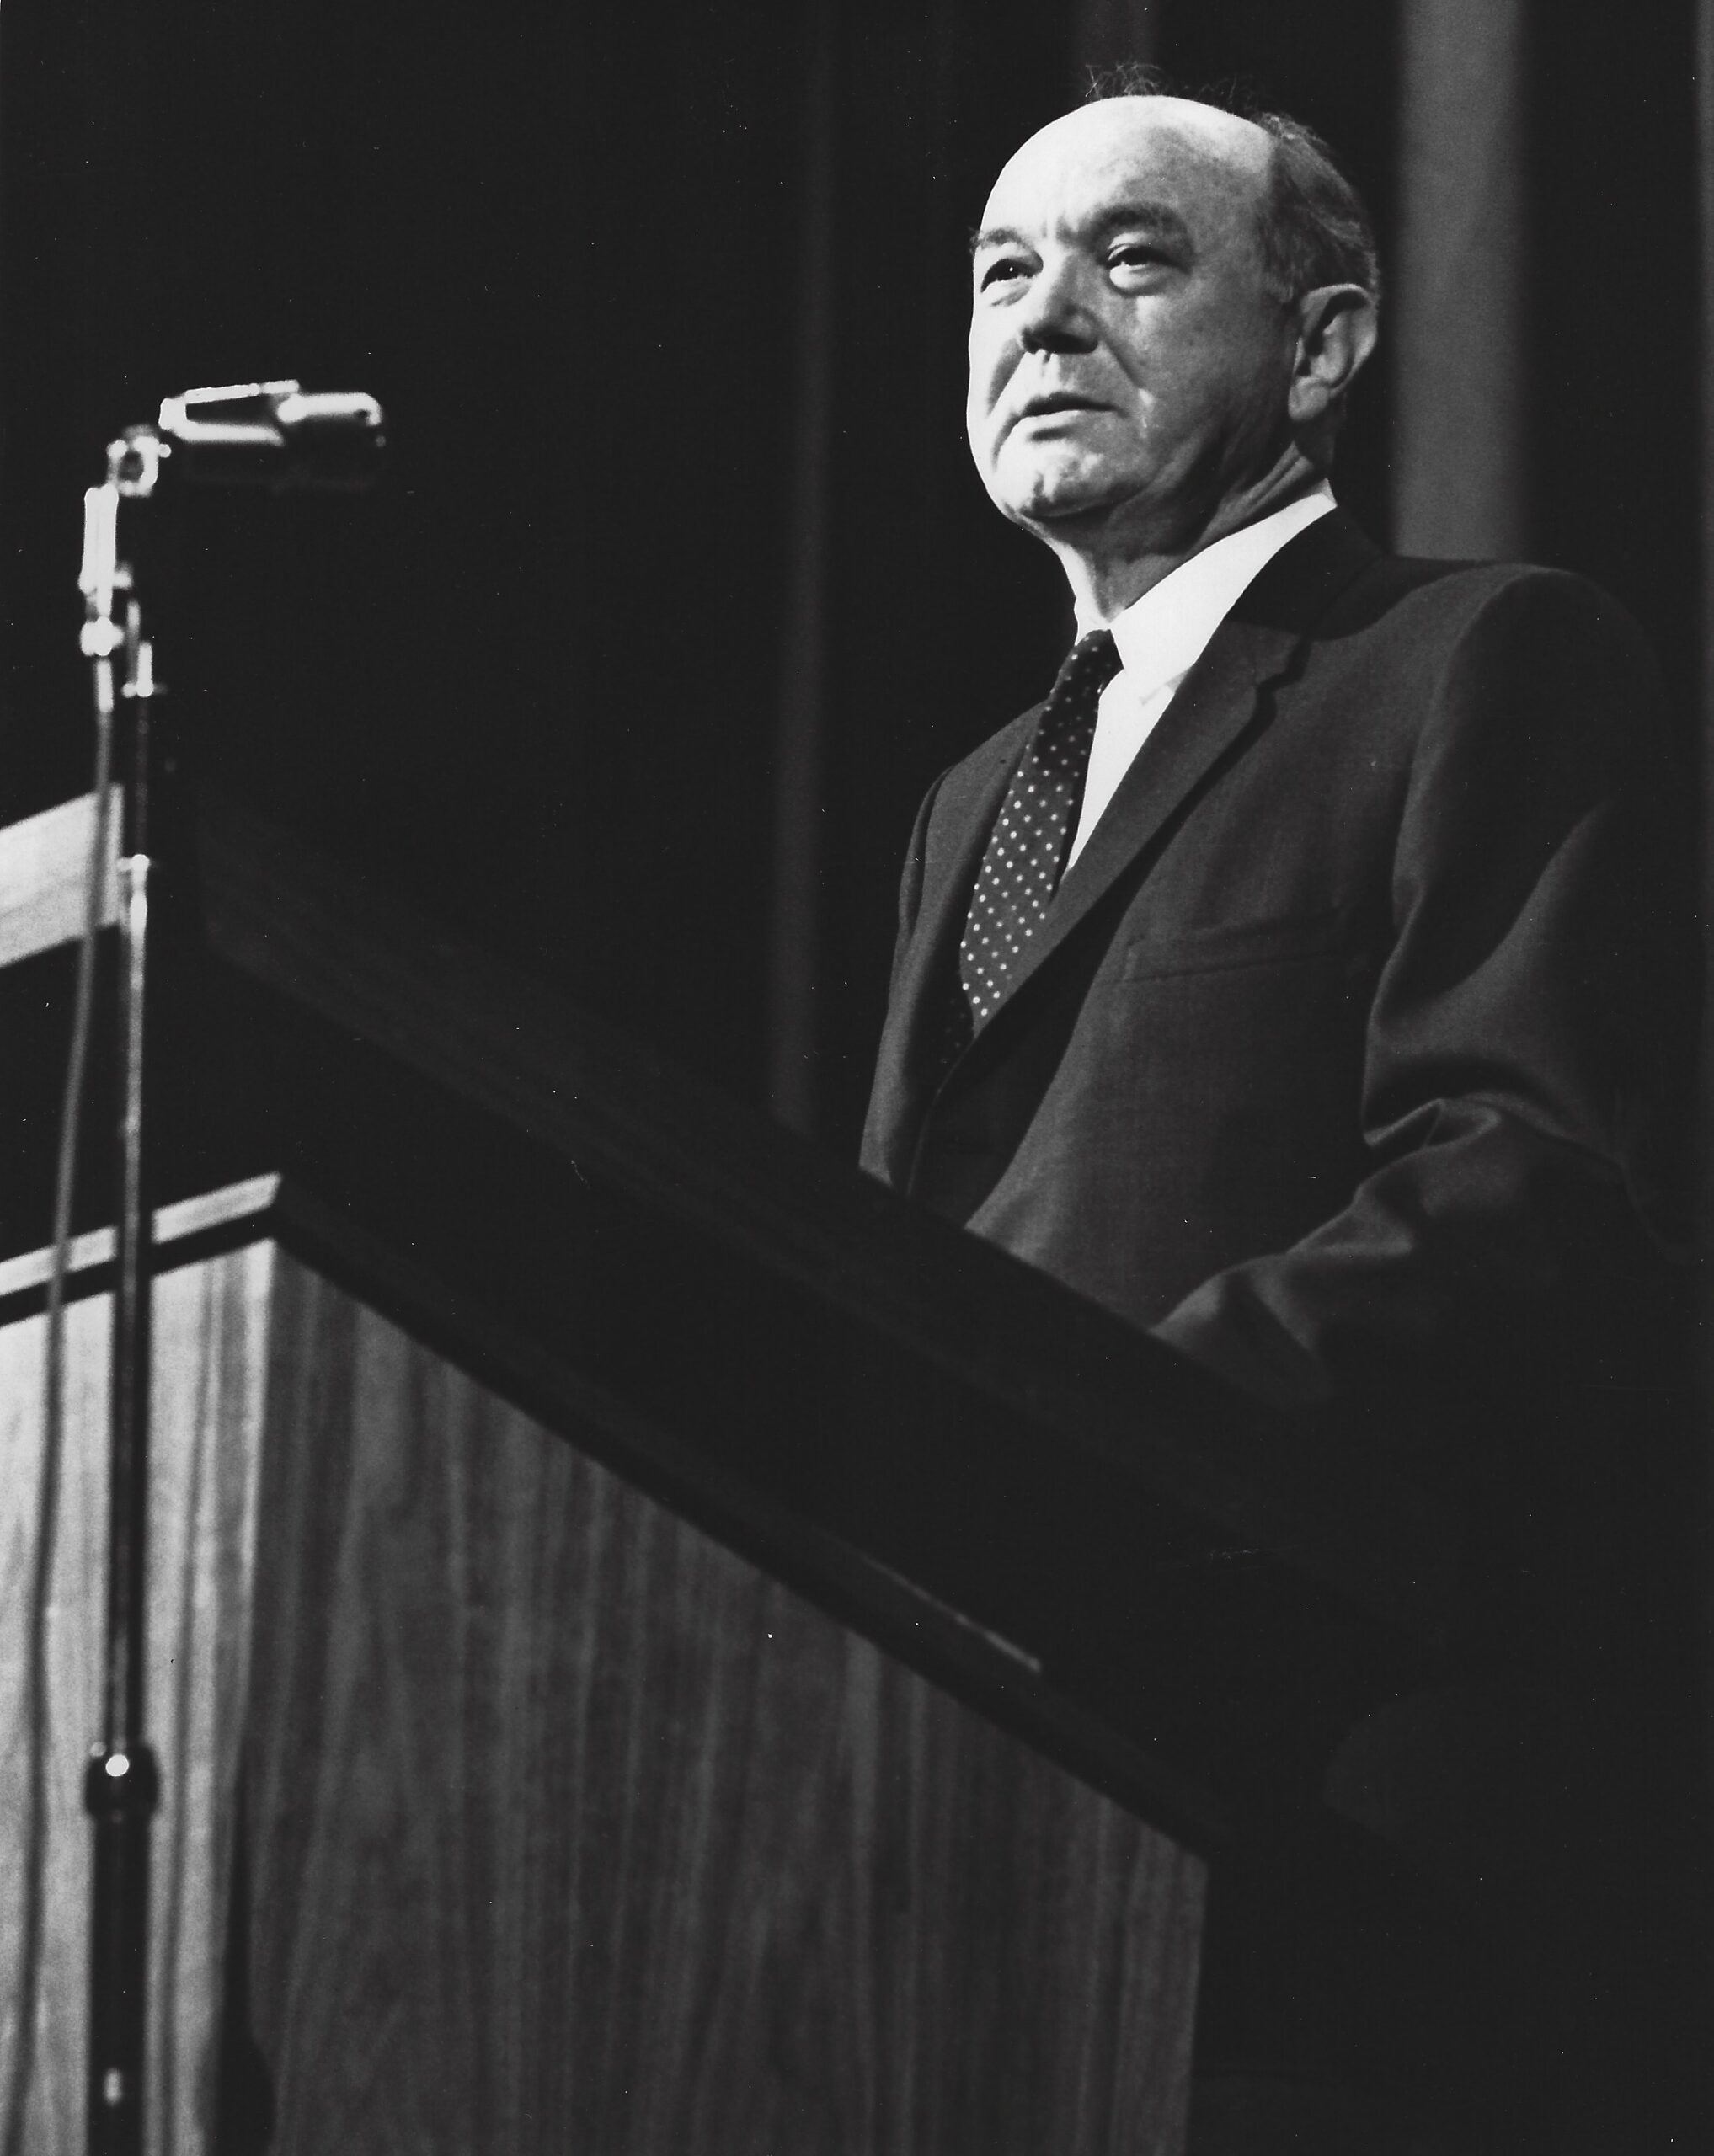 Dean Rusk standing in front of a podium